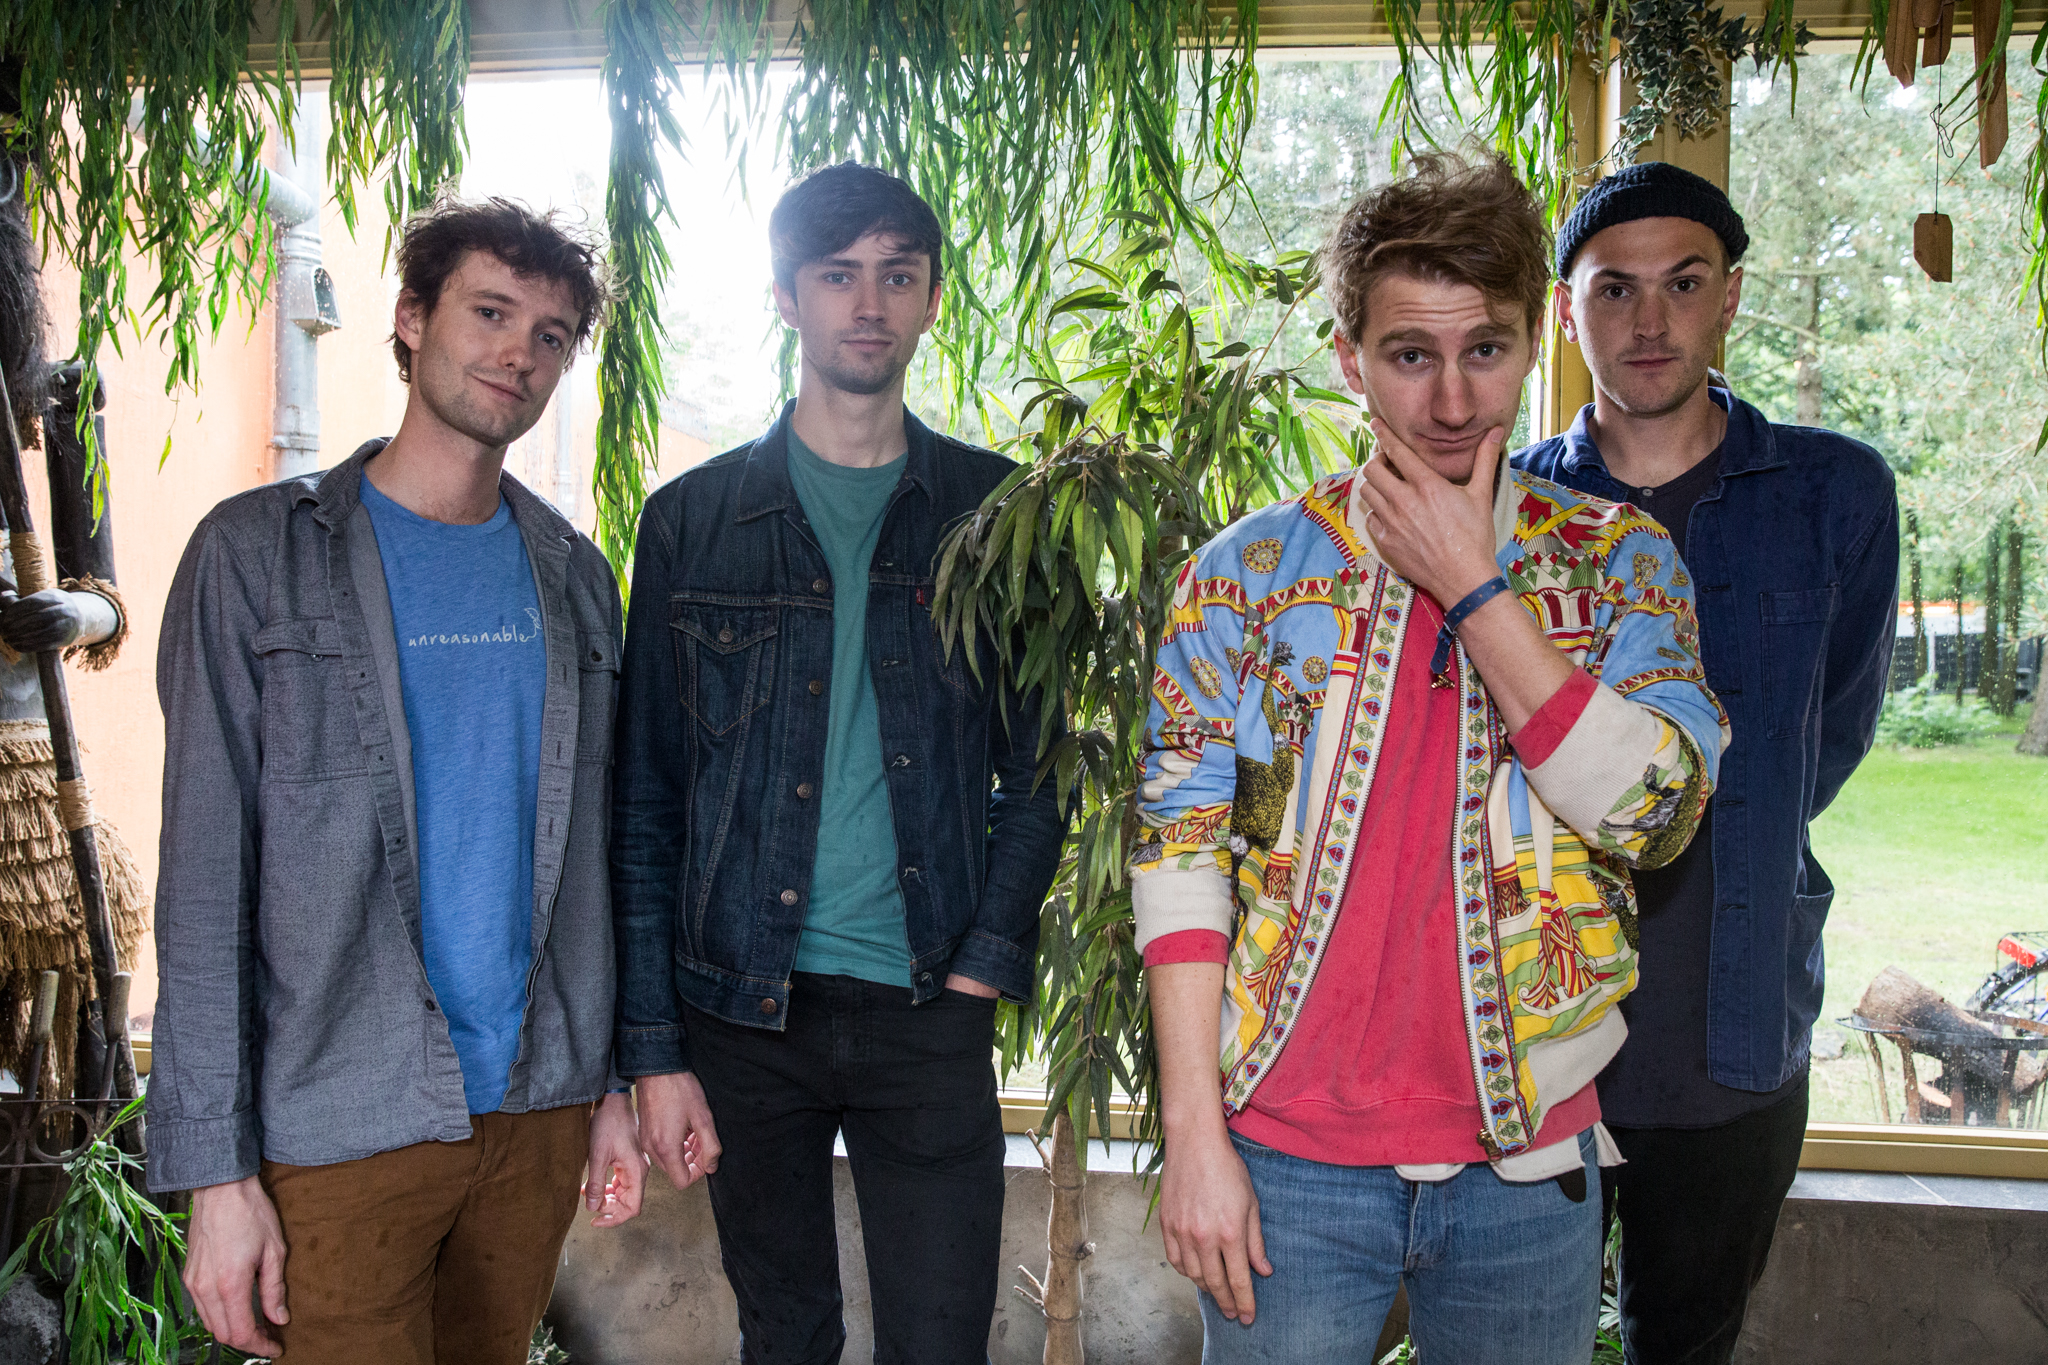 Glass Animals discuss the characters behind new album 'How to Be a Human Being'